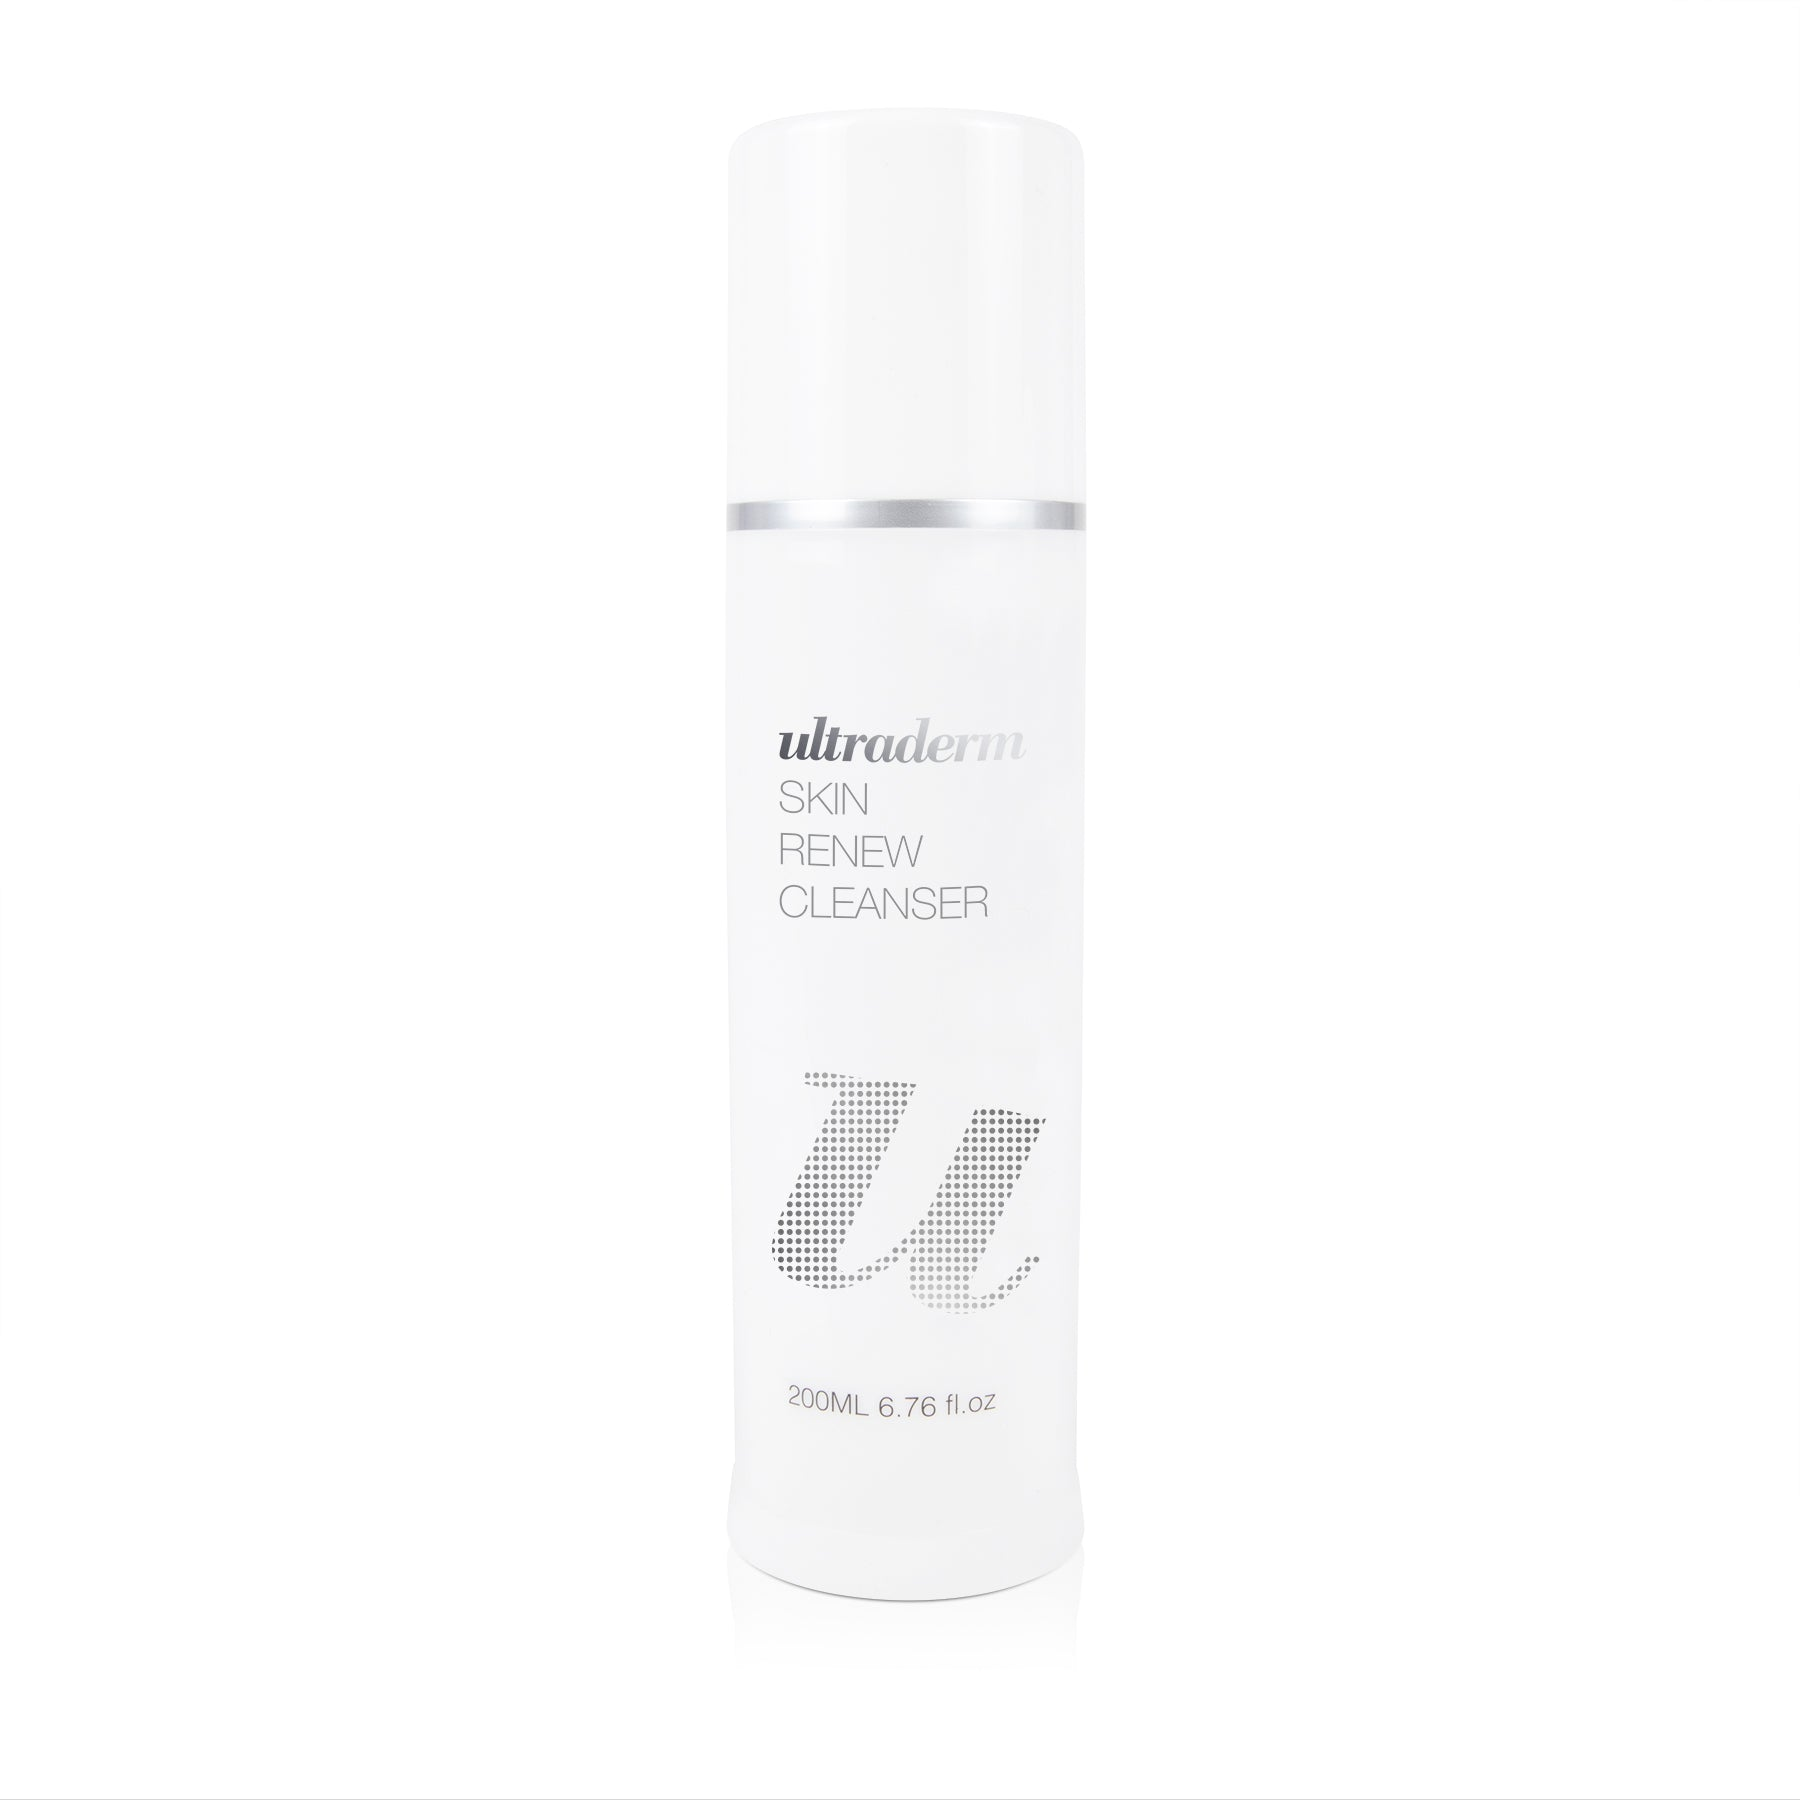 Ultraderm Skin Renew Cleanser, AHA/BHA Gentle Exfoliating Cleanser with Glycolic & Salicylic Acids